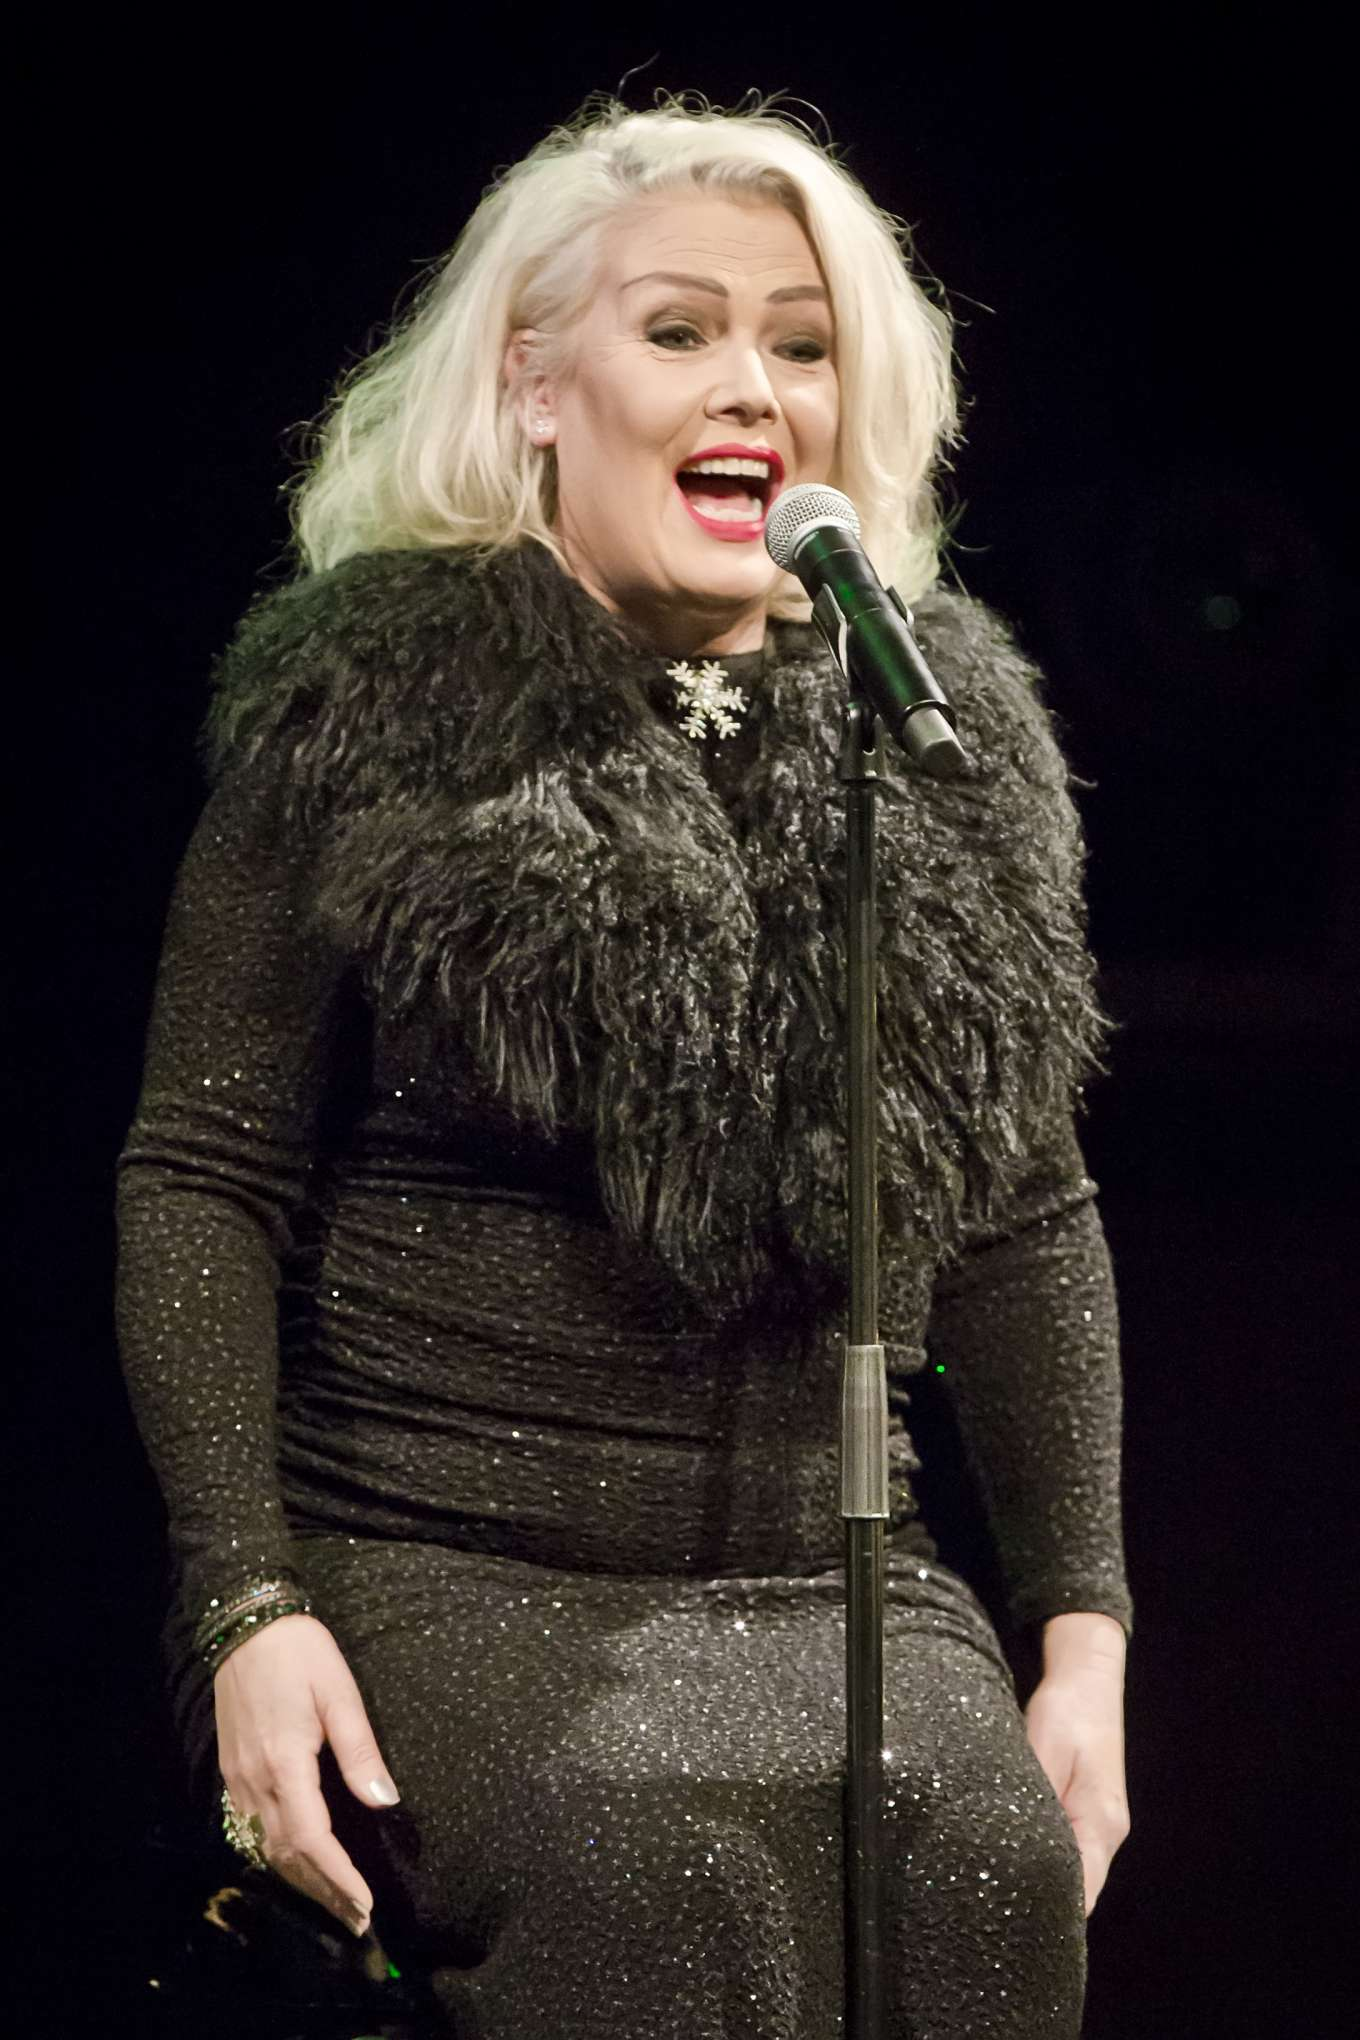 Kim Wilde - Performs Live During a Concert in Berlin